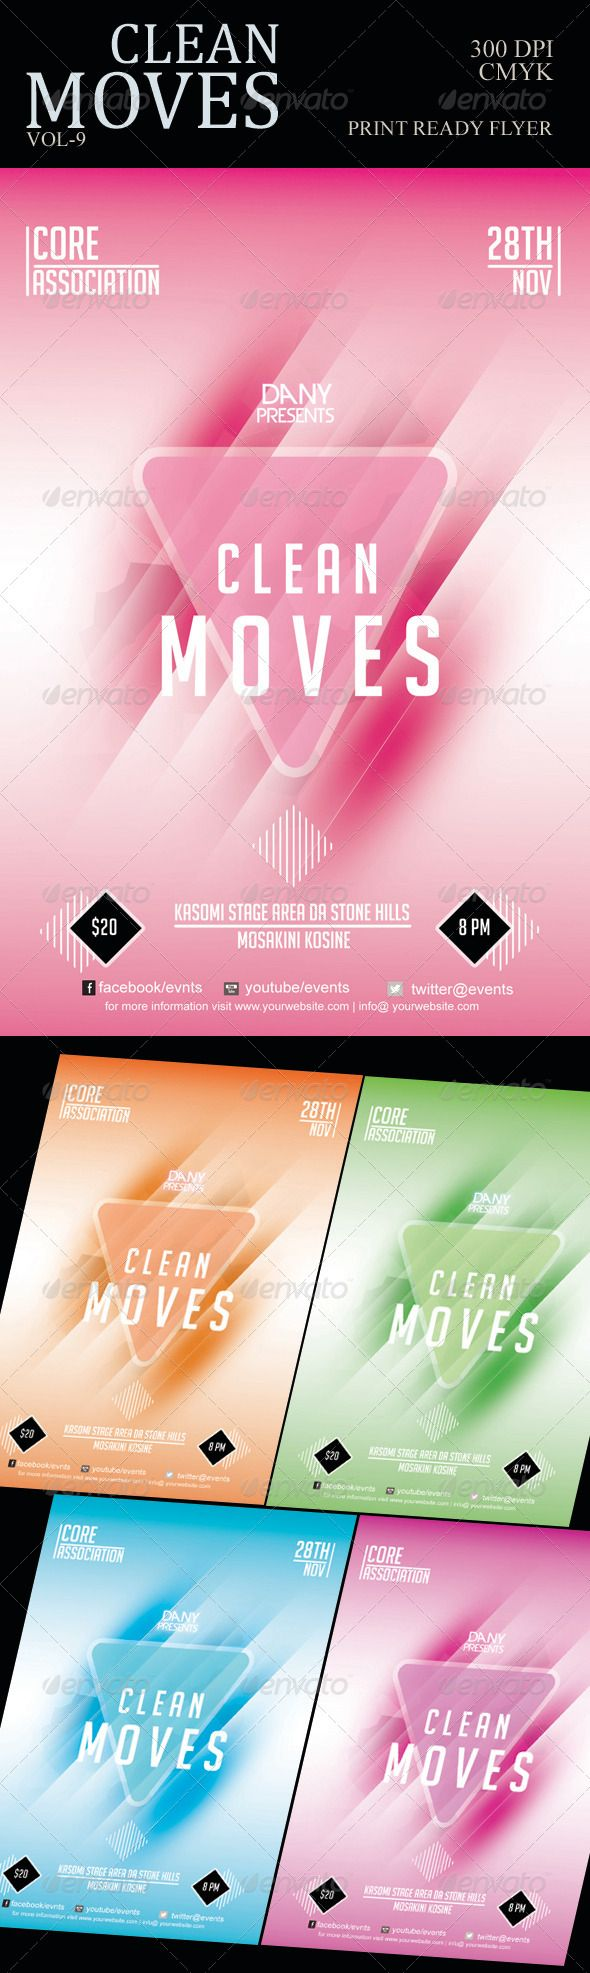 Clean Moves Flyer 9  #GraphicRiver         It is a clean flyer which can be used for any event, festival or for your loving occasion. You can edit it according to your requirement. Very clean and decent in nature just scattering painted beams and stripes from the centre of flyer, it will give elegant appearance.  DETAILS OF FLYER FILE  PSD file with layers 4.25×6.25  with .25 bleed 3000 dpi with CMYK colors Fonts are Devil Breeze and Bignoodle titling   	  .dafont /bignoodle-titling.font   	…